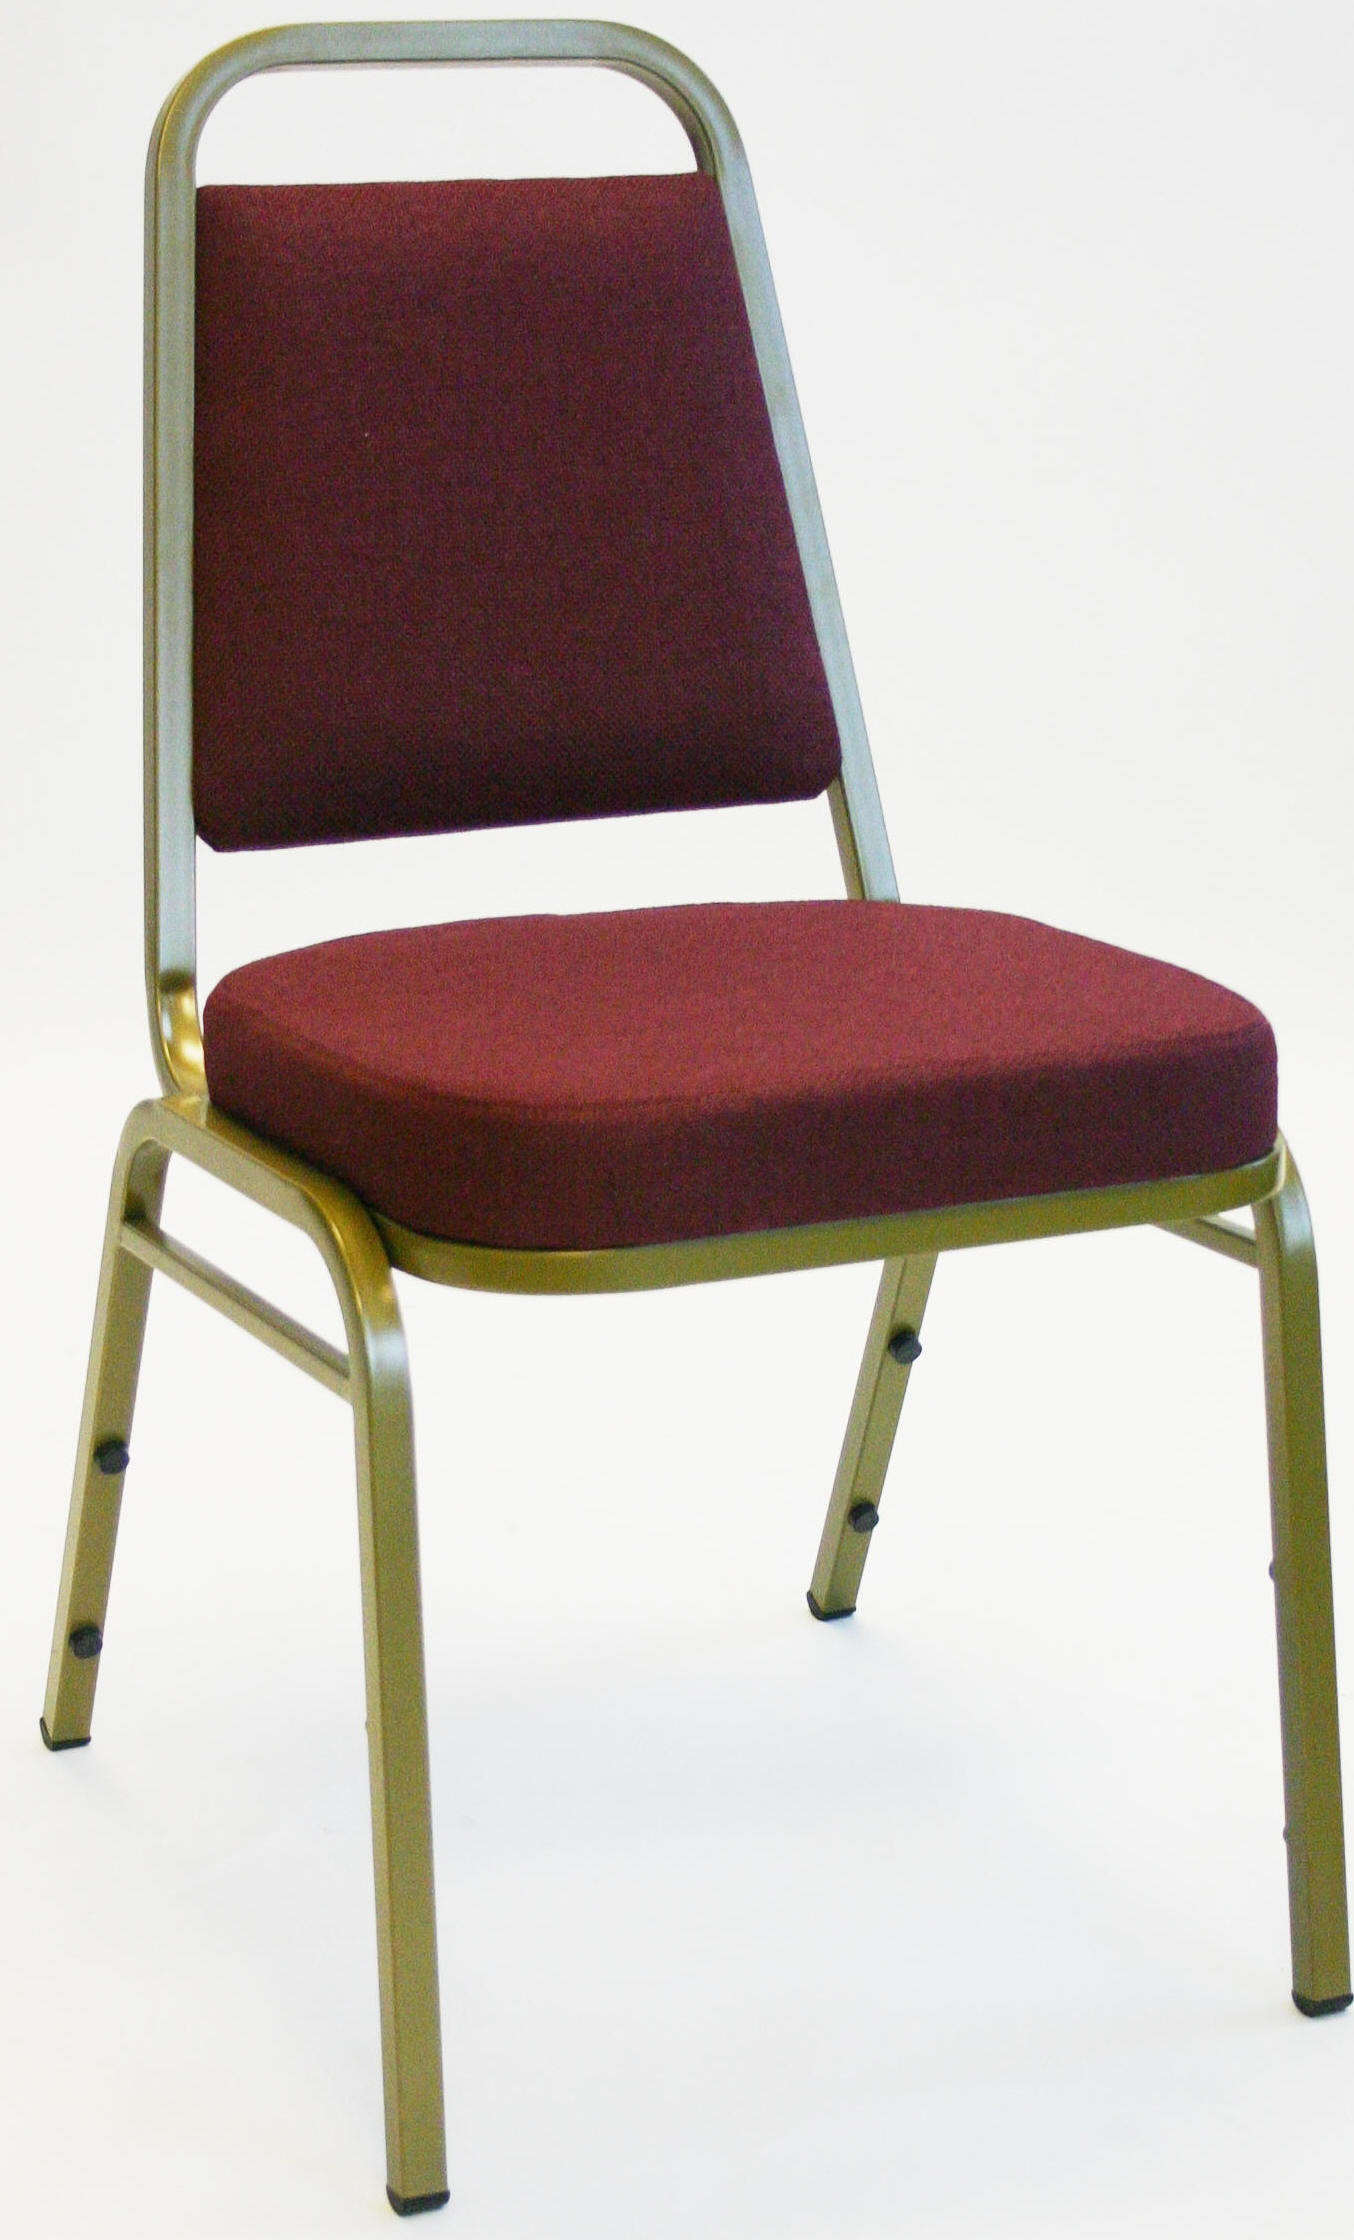 Folding cushion chair